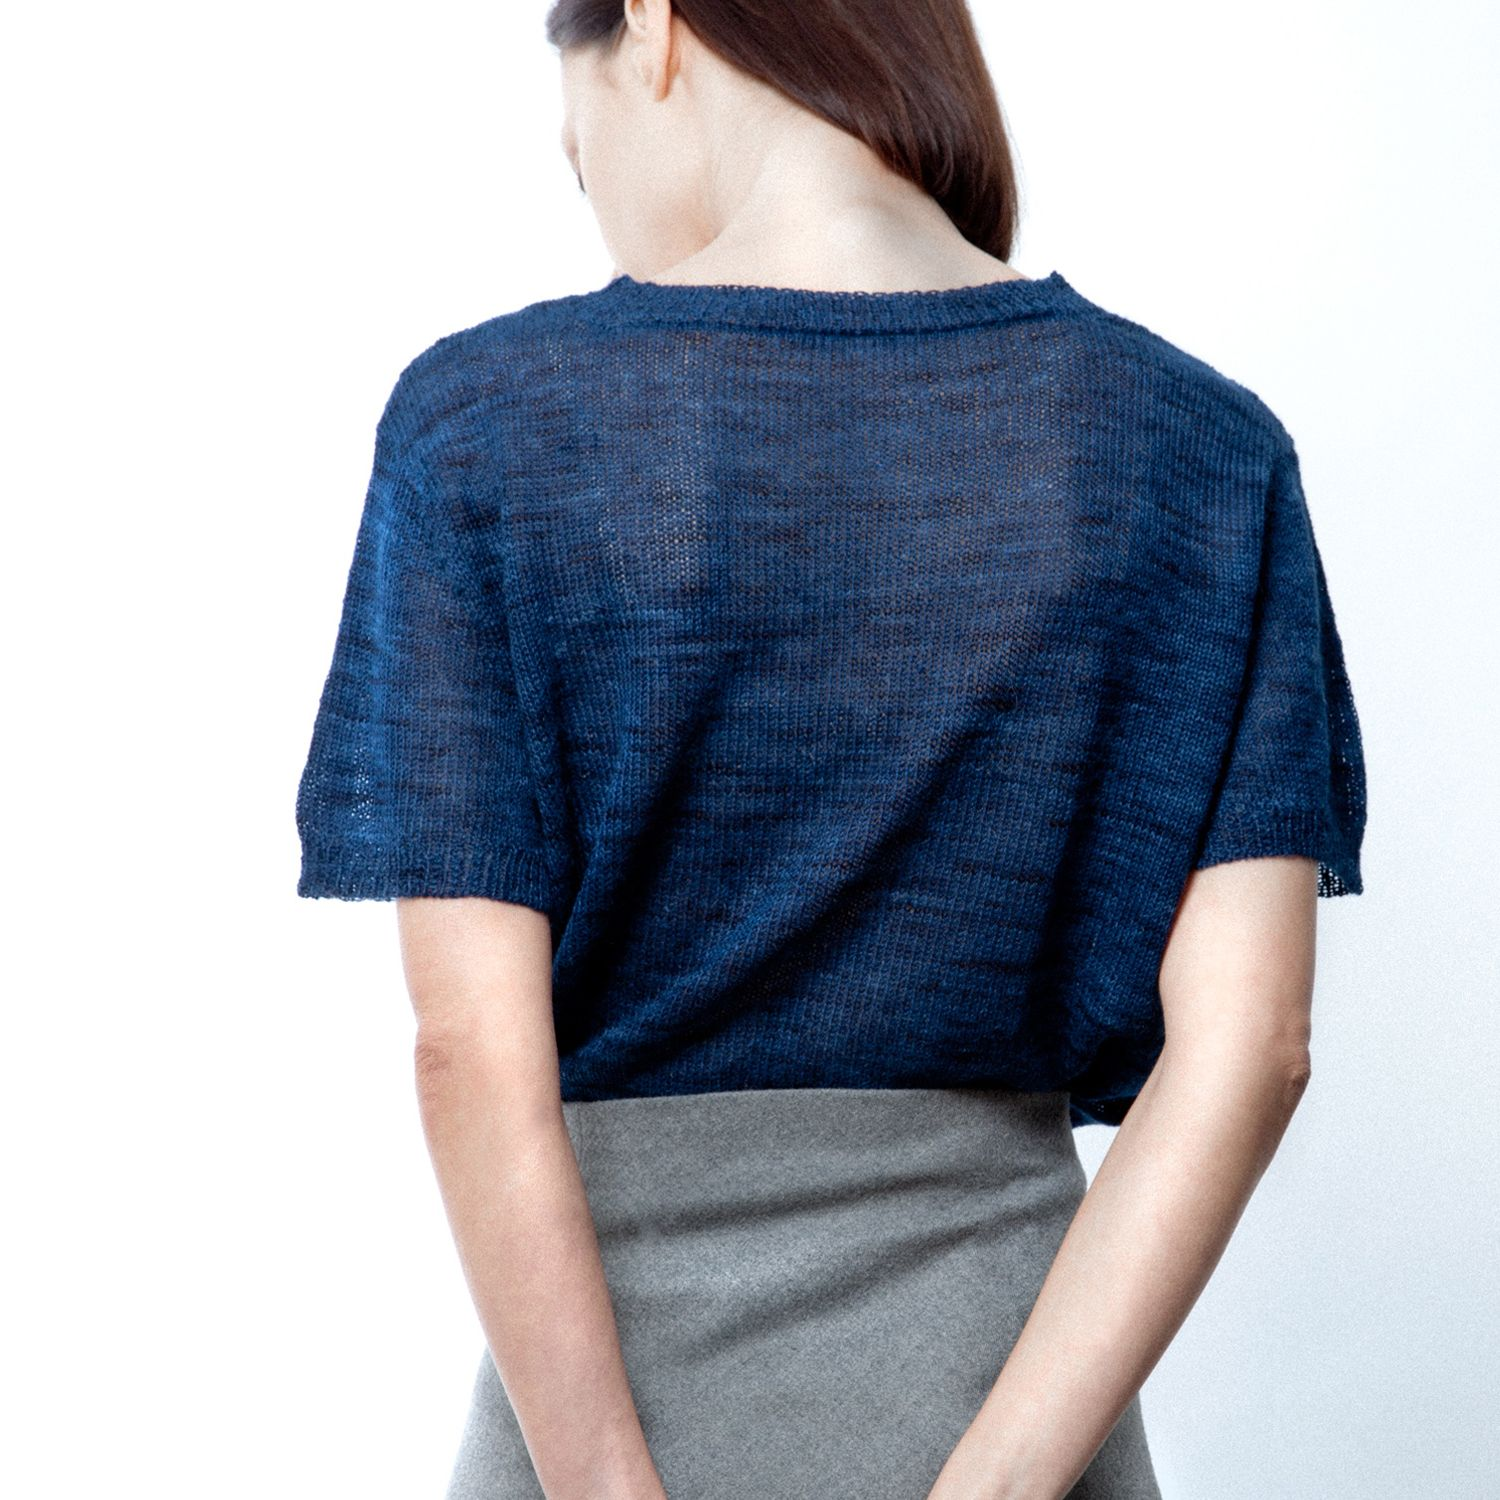 Sheer knit top by KNITBRARY